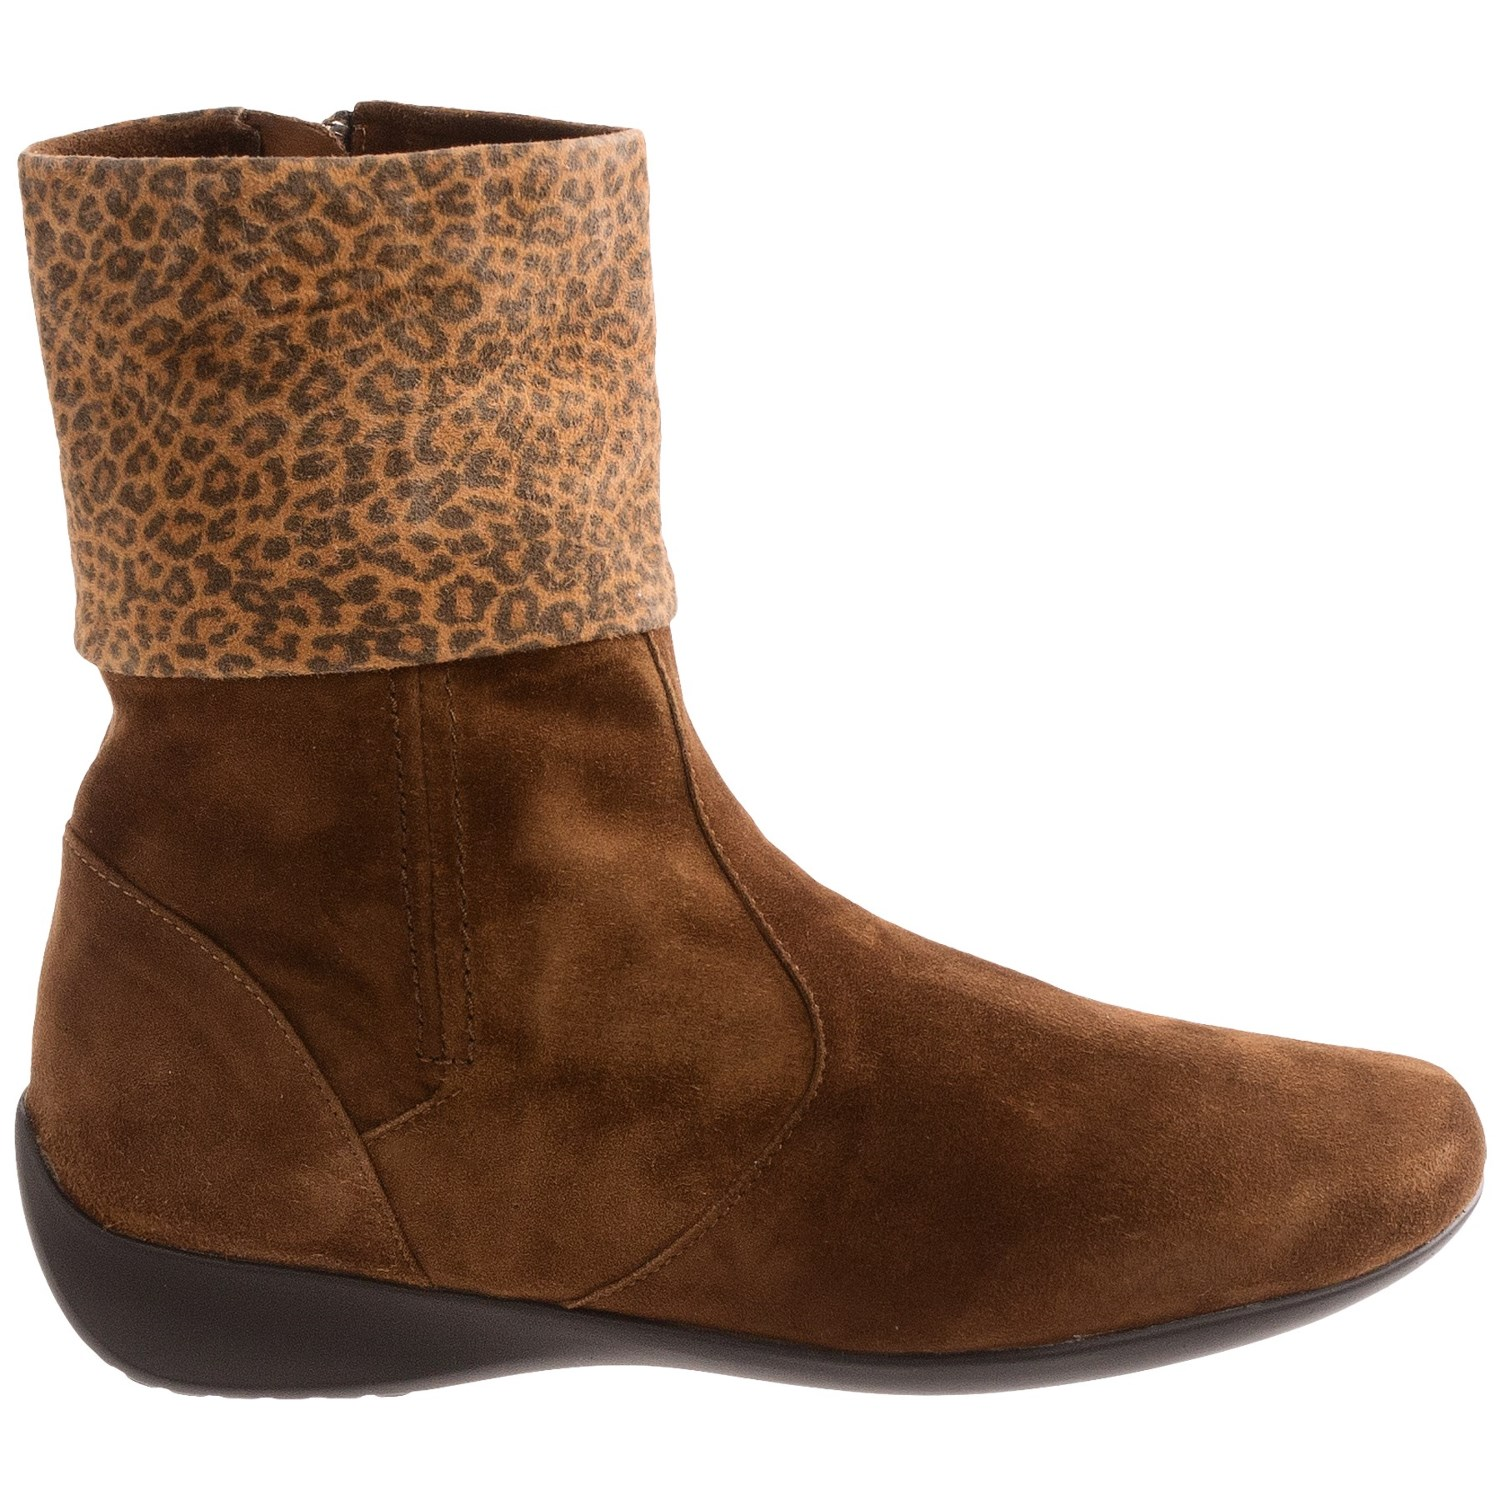 wolky suede ankle boots for 7890k save 70